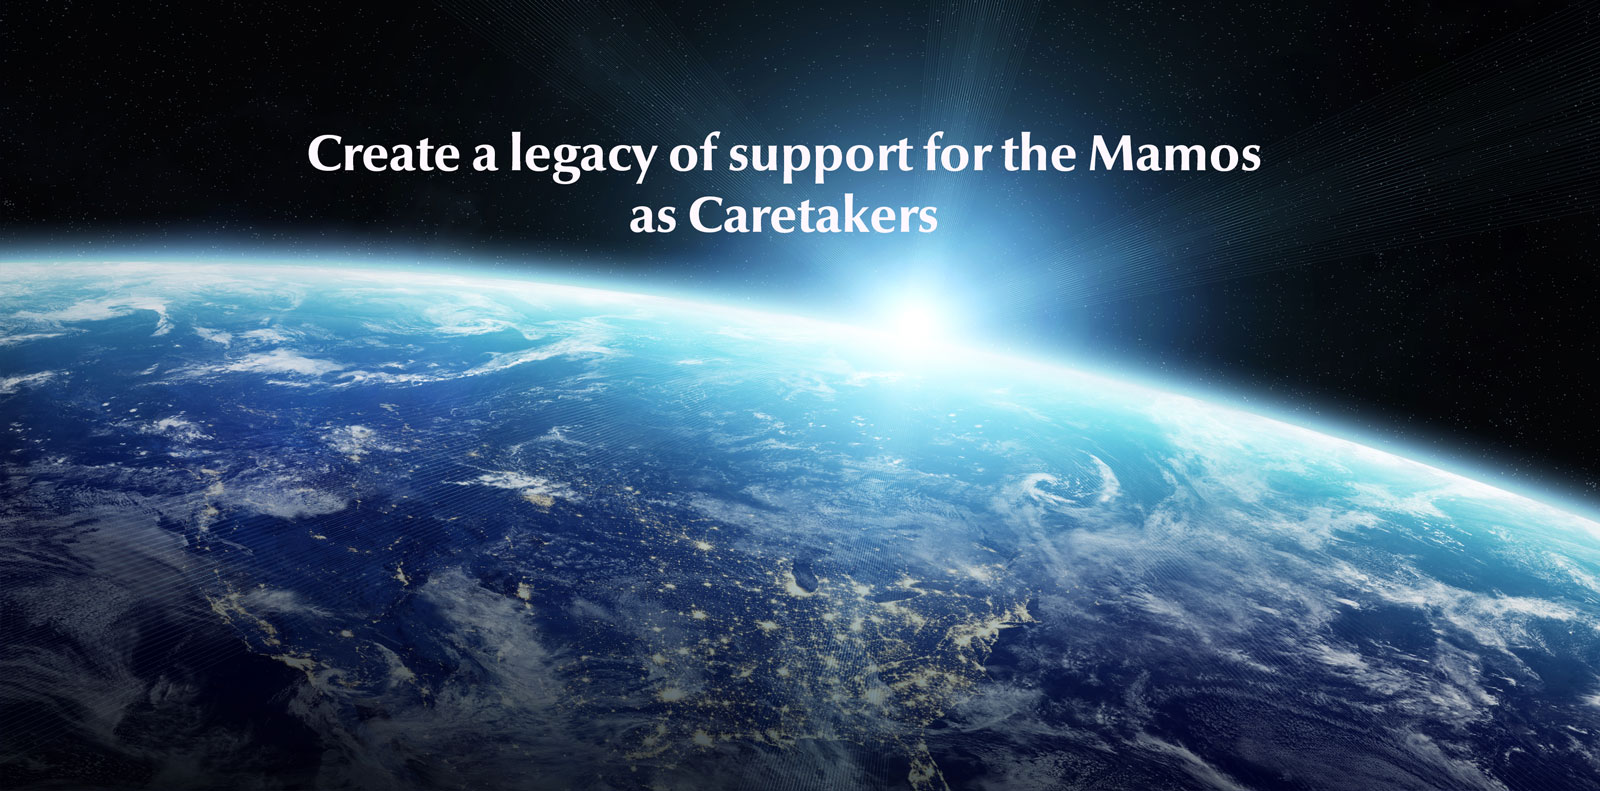 create-a-legacy-of-support-for-the-mamos-as-caretakers